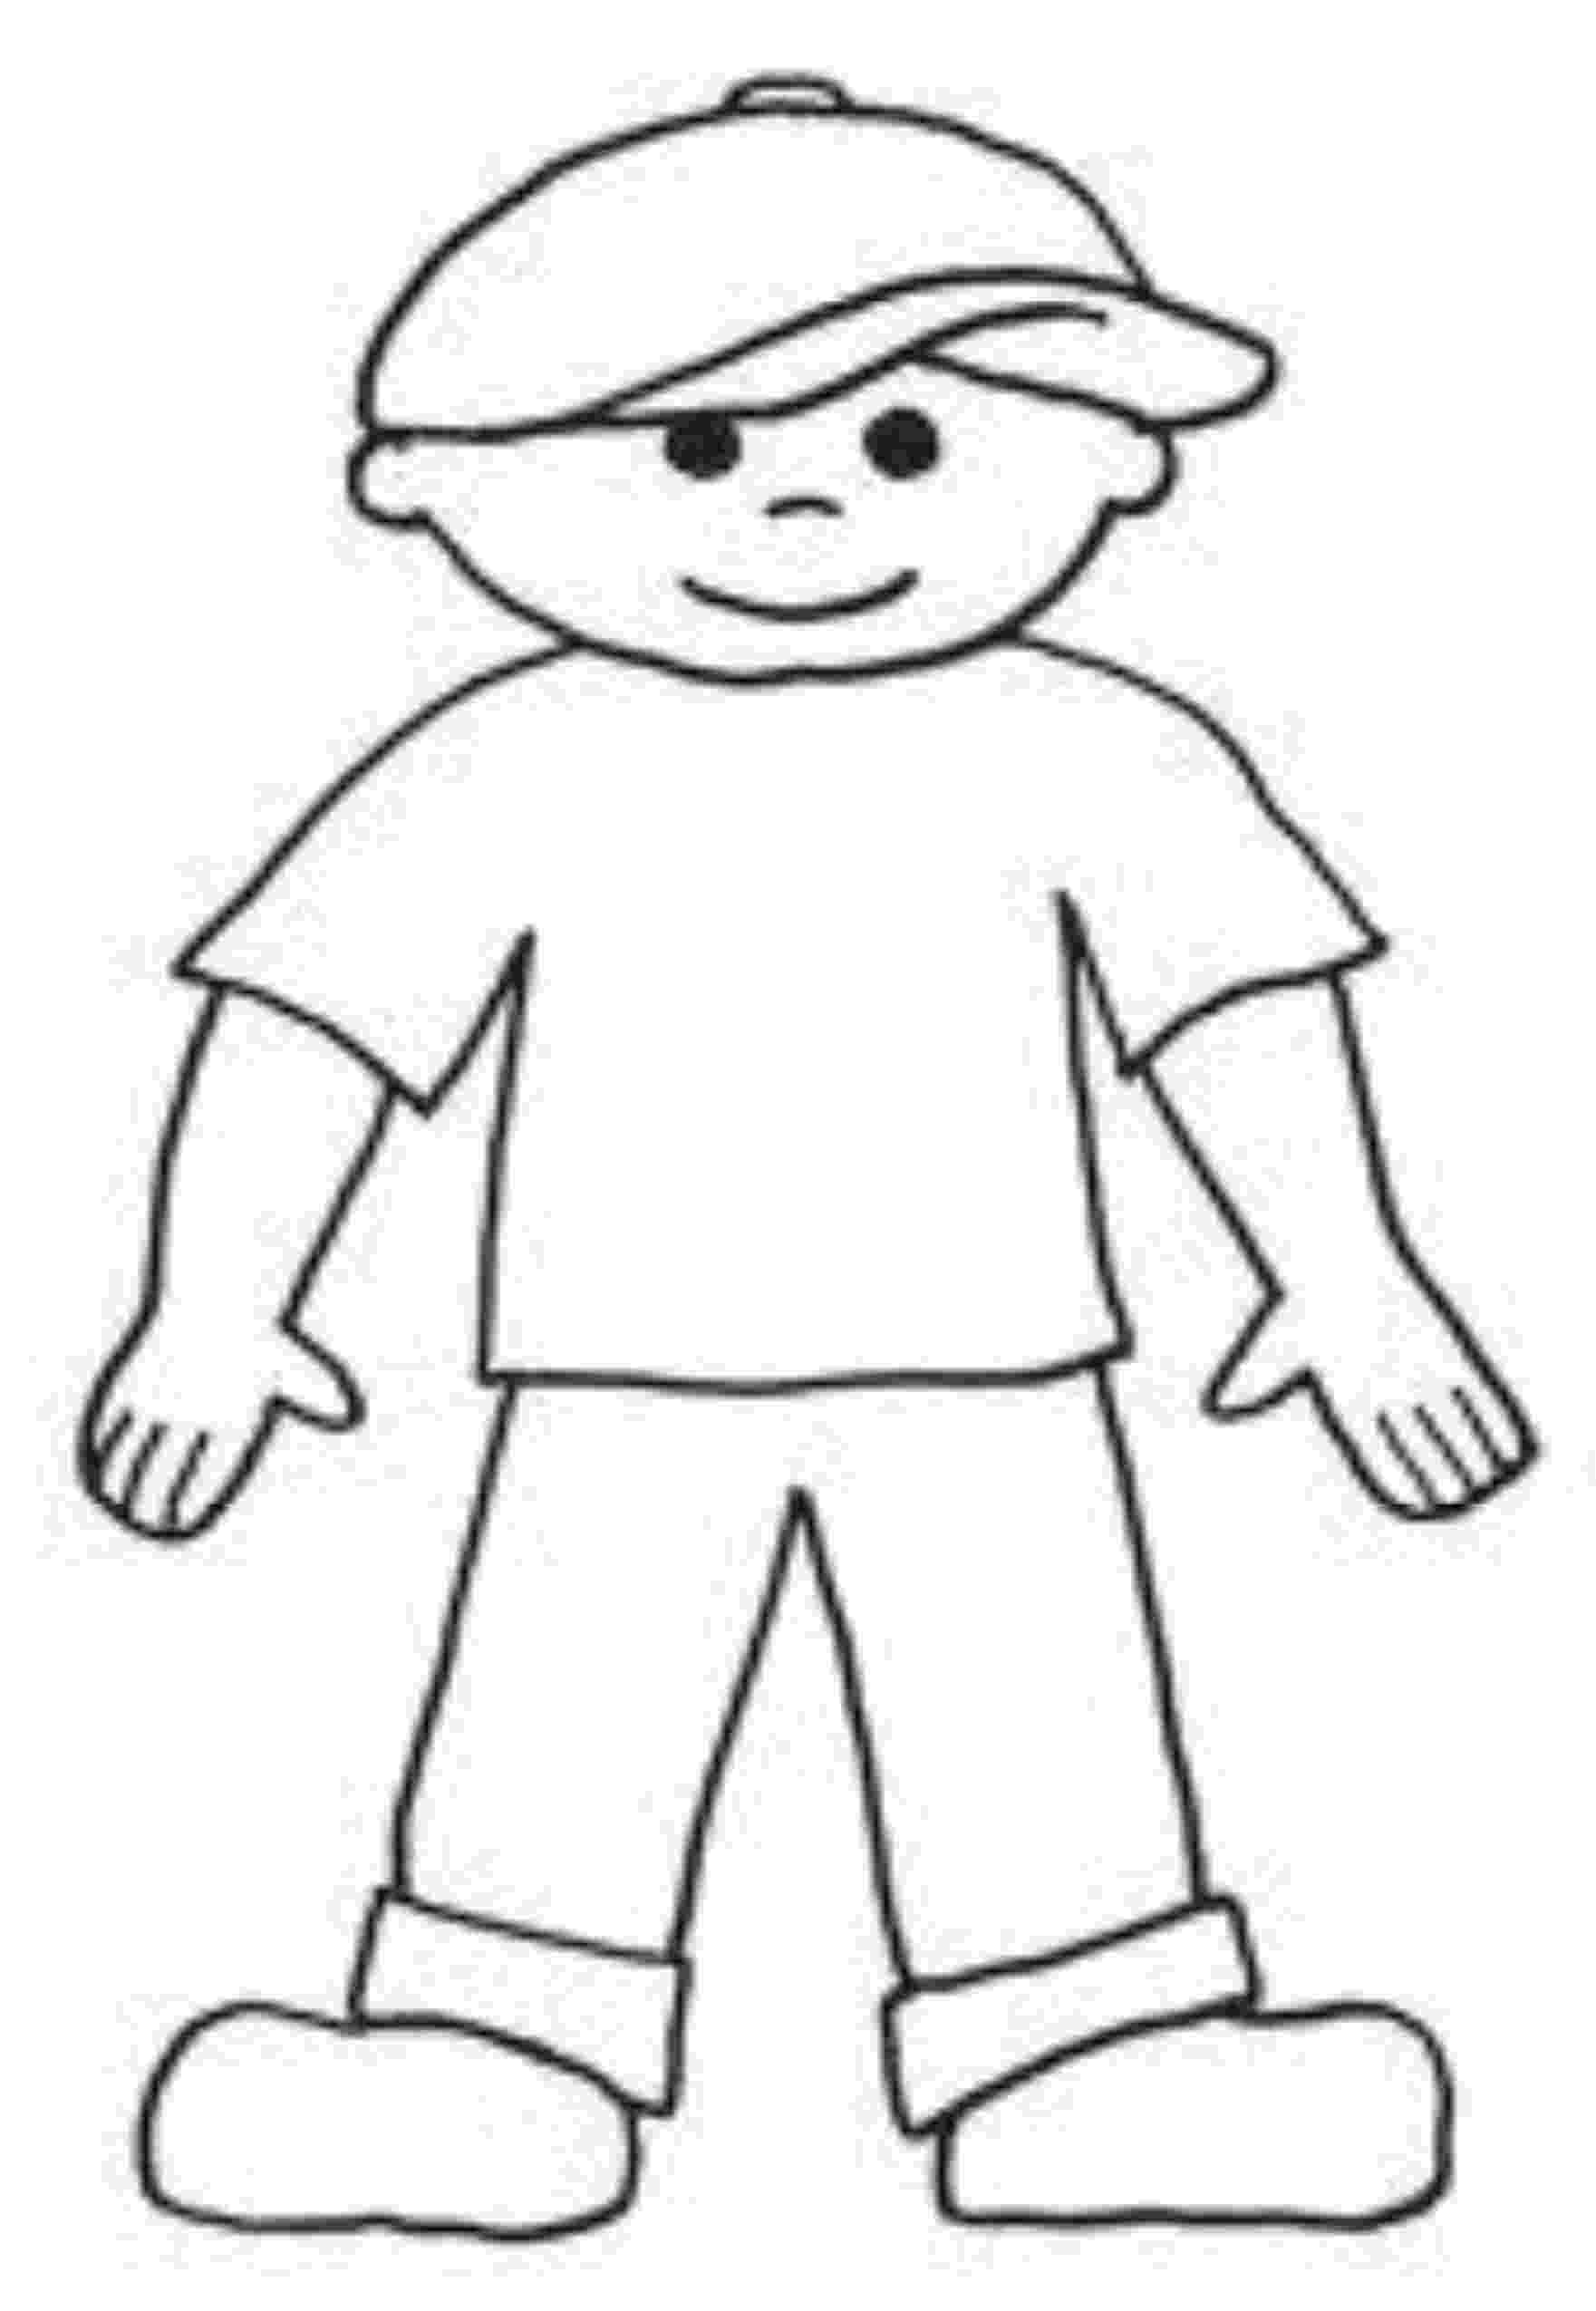 flat stanley coloring page 17 free flat stanley templates colouring pages to print flat page stanley coloring